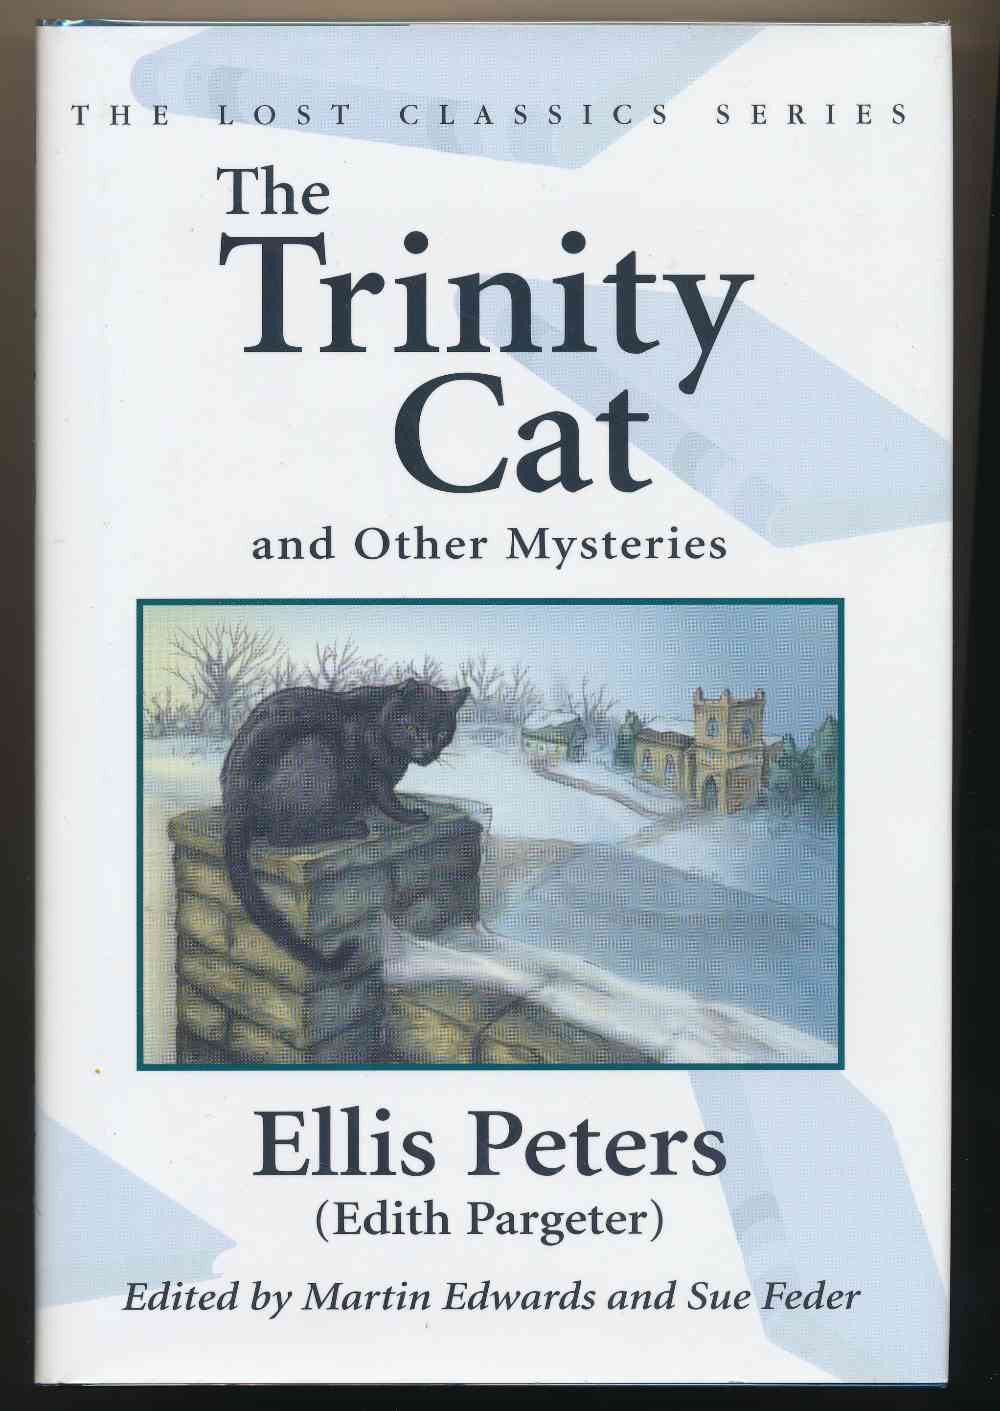 The trinity cat, and other mysteries